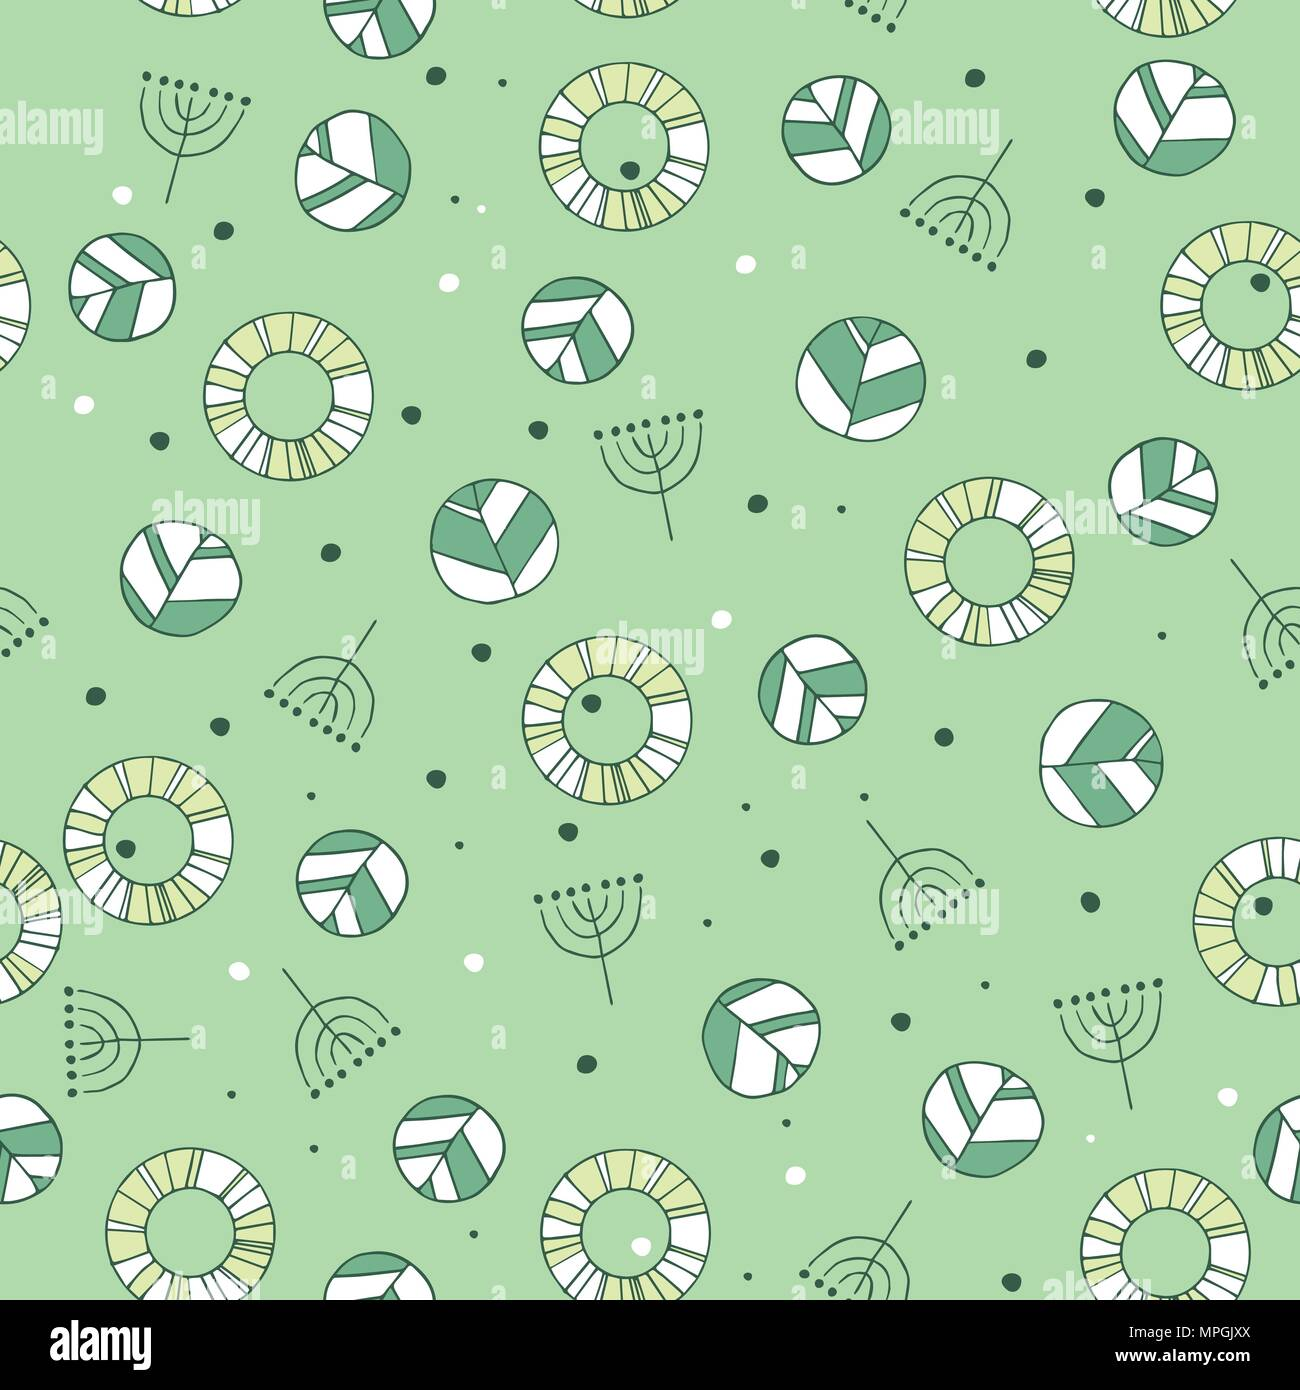 Seamless nature pattern with cute leaves in green color. Modern foliage background with twigs in chaotic manner. Flat hand draw style - Stock Vector